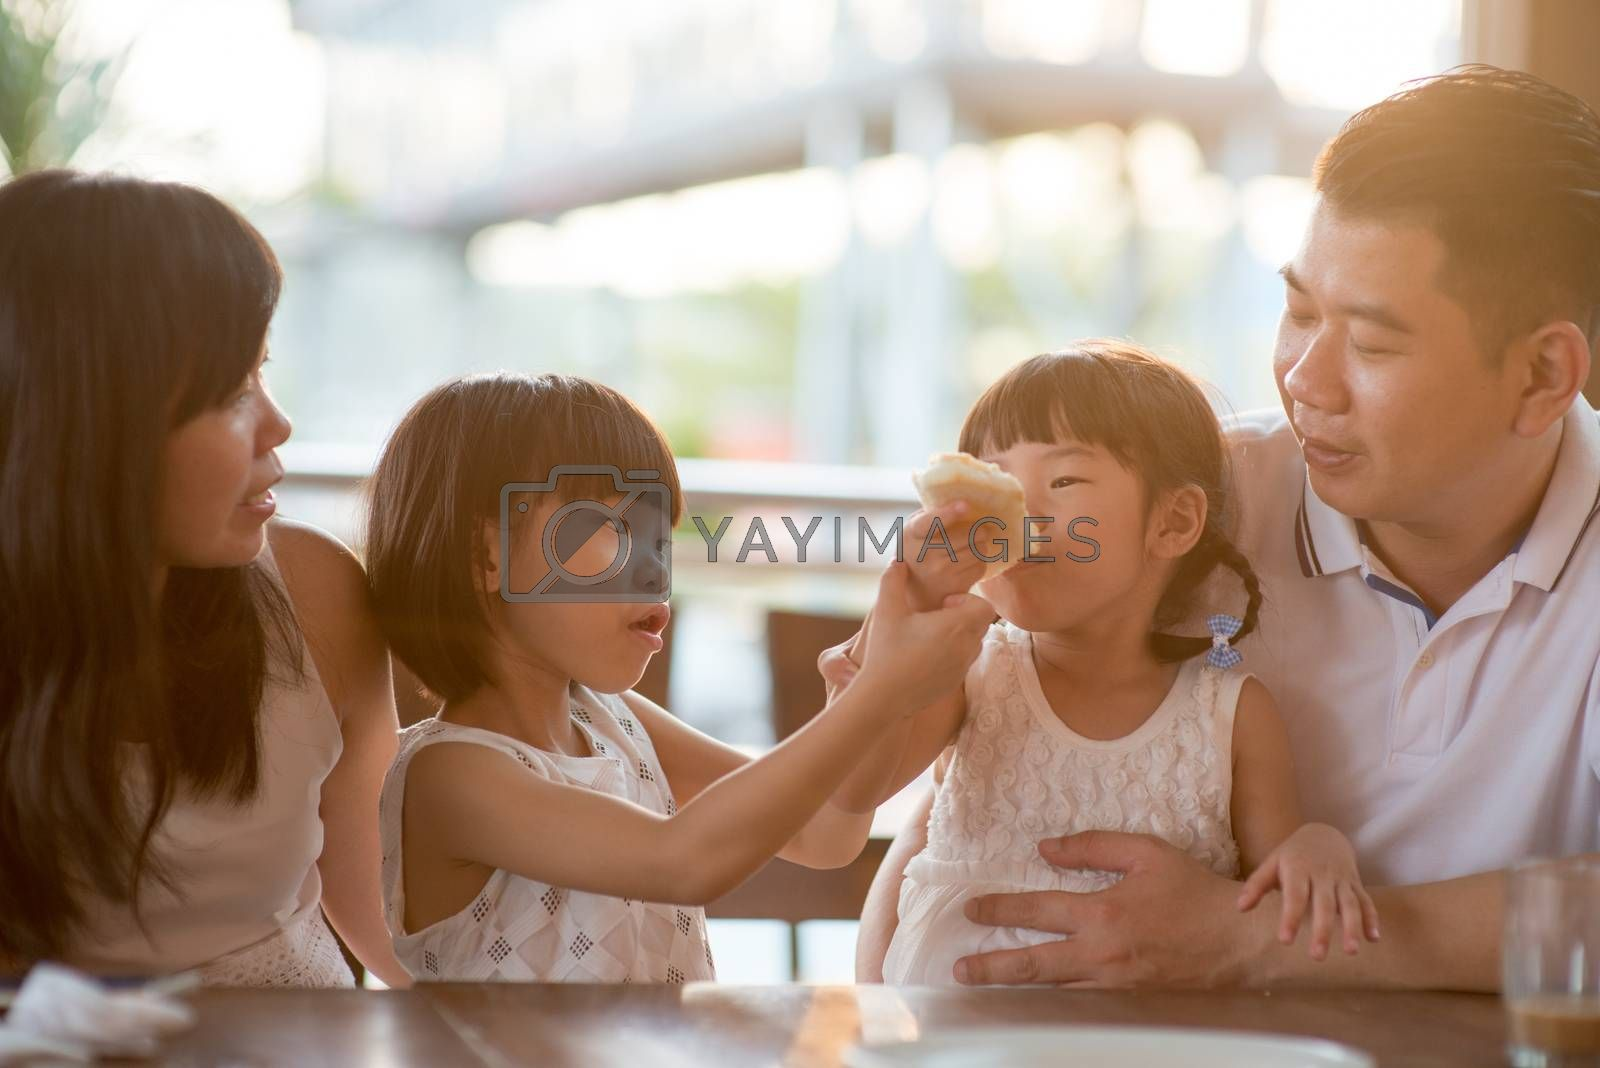 Adorable children eating and sharing butter toast at cafeteria. Asian family outdoor lifestyle with natural light.